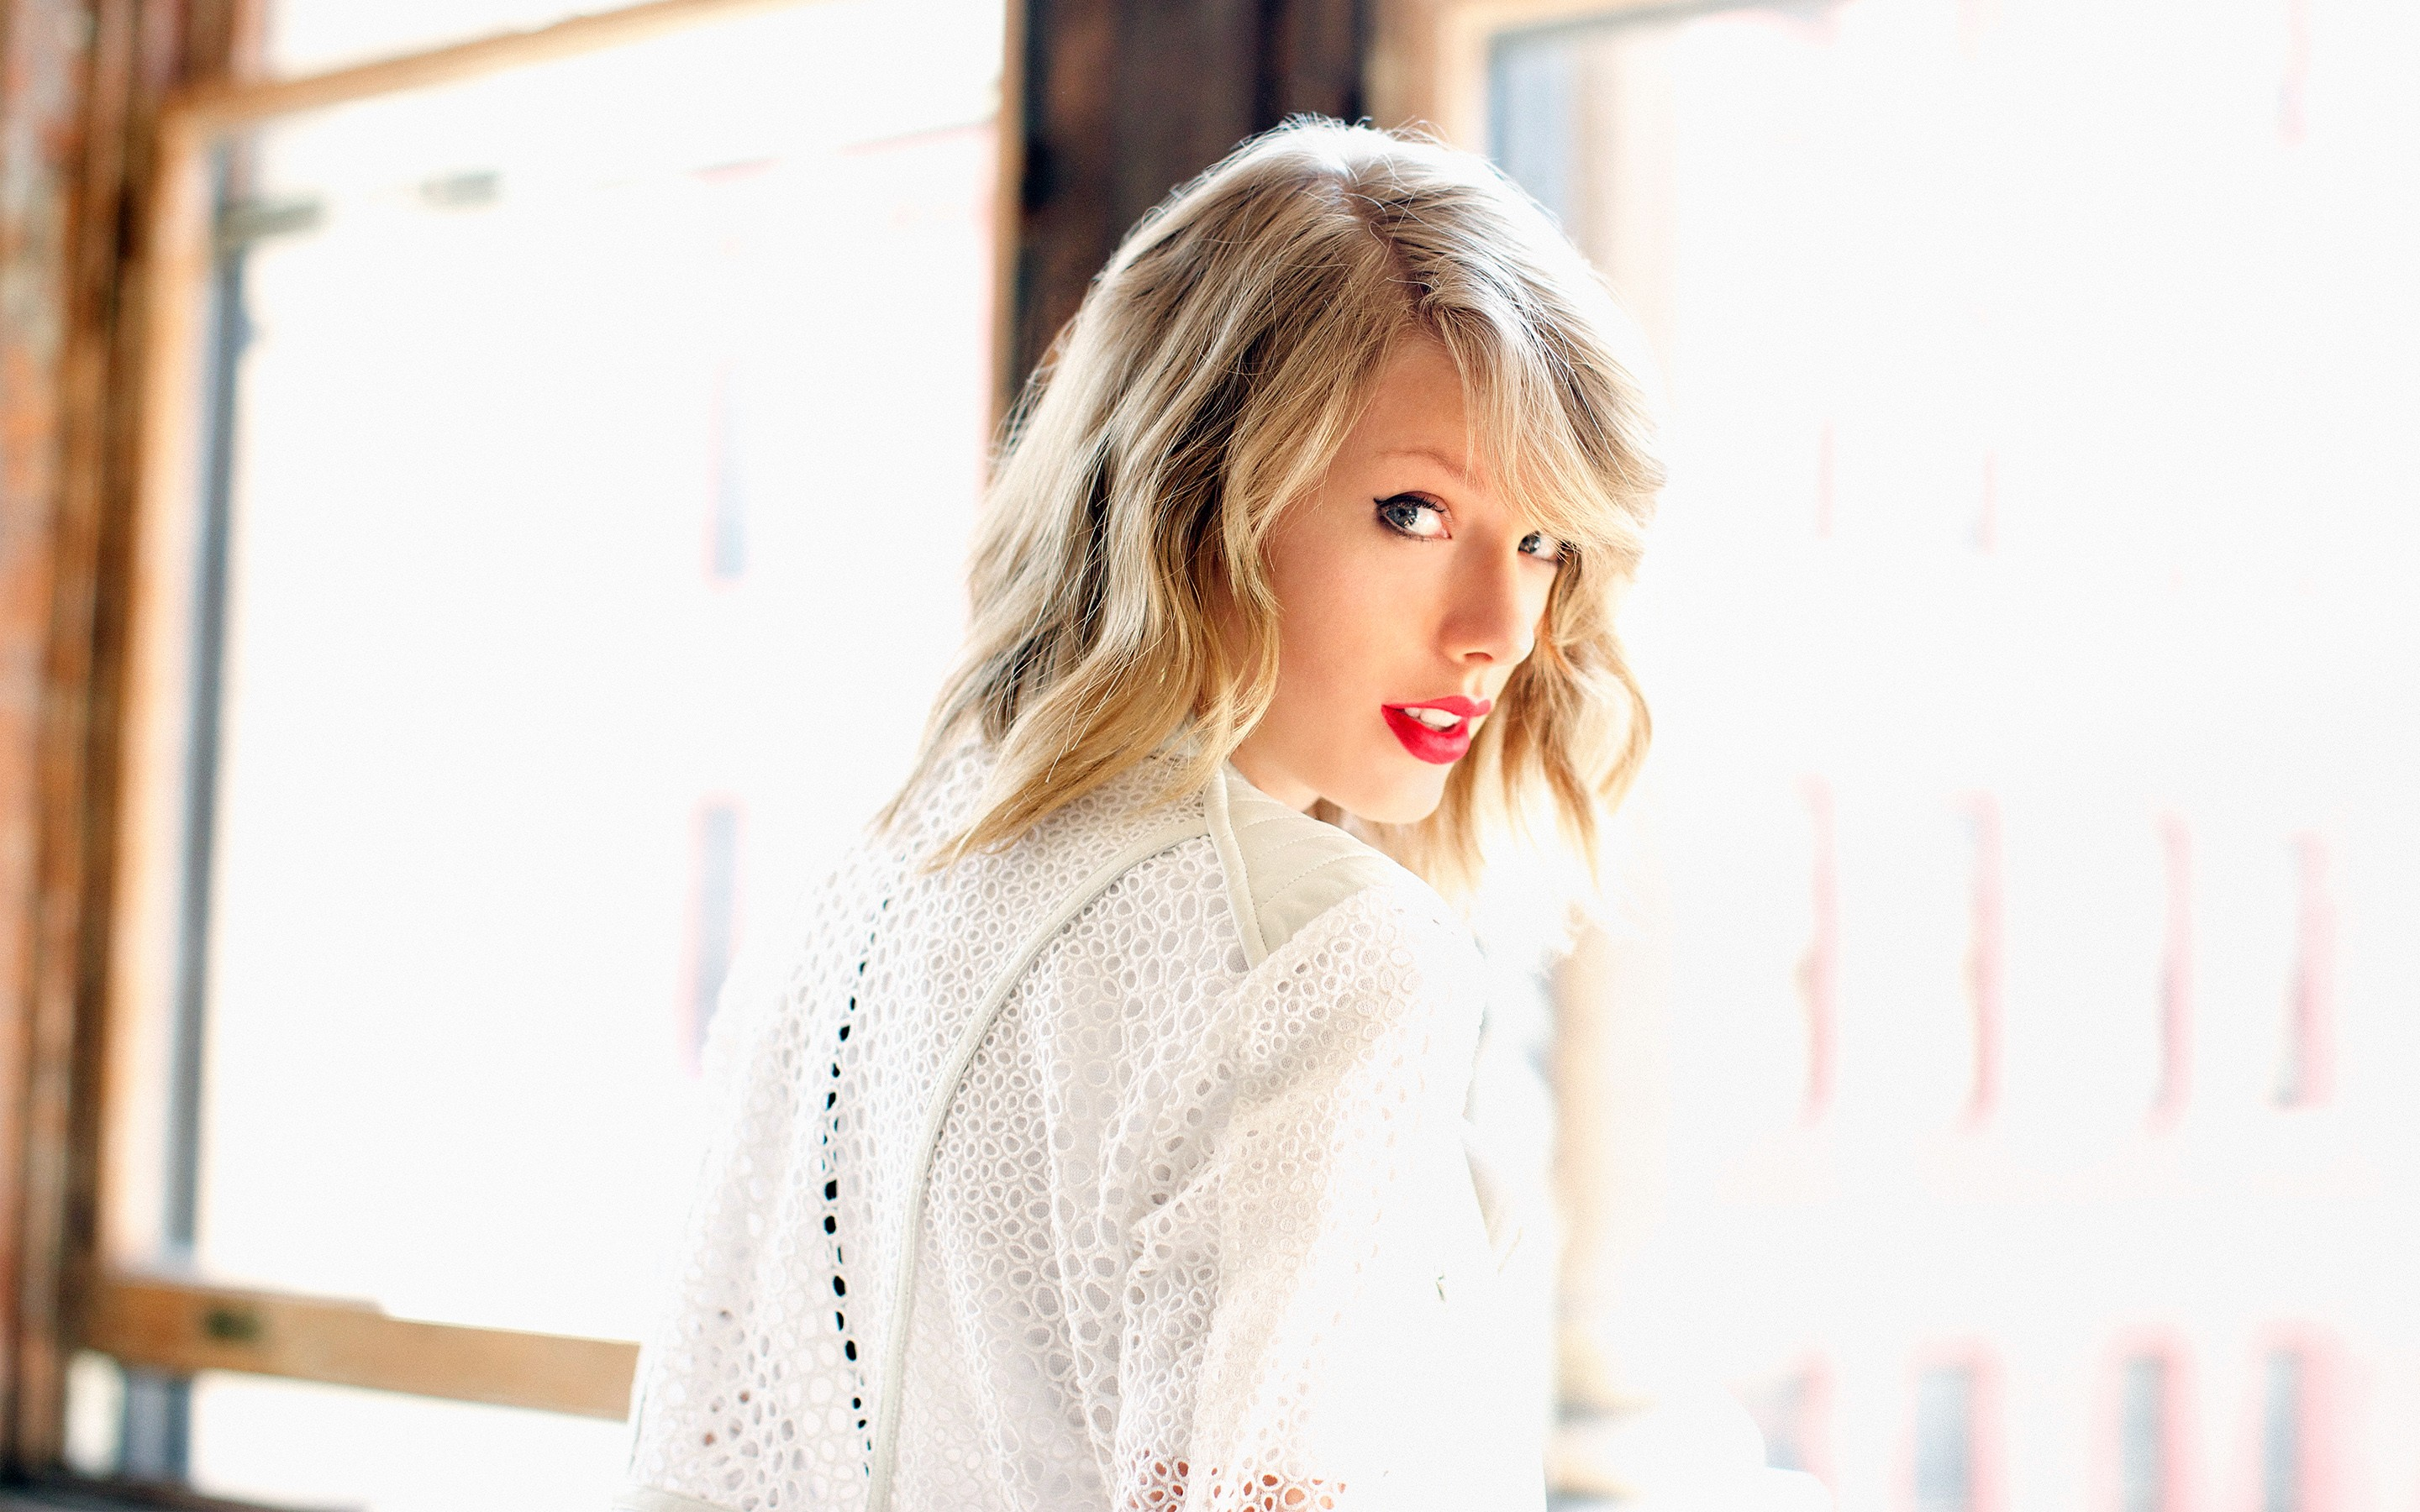 Taylor Swift Beauty Side Look Hd Free Desktop Background Laptop Images